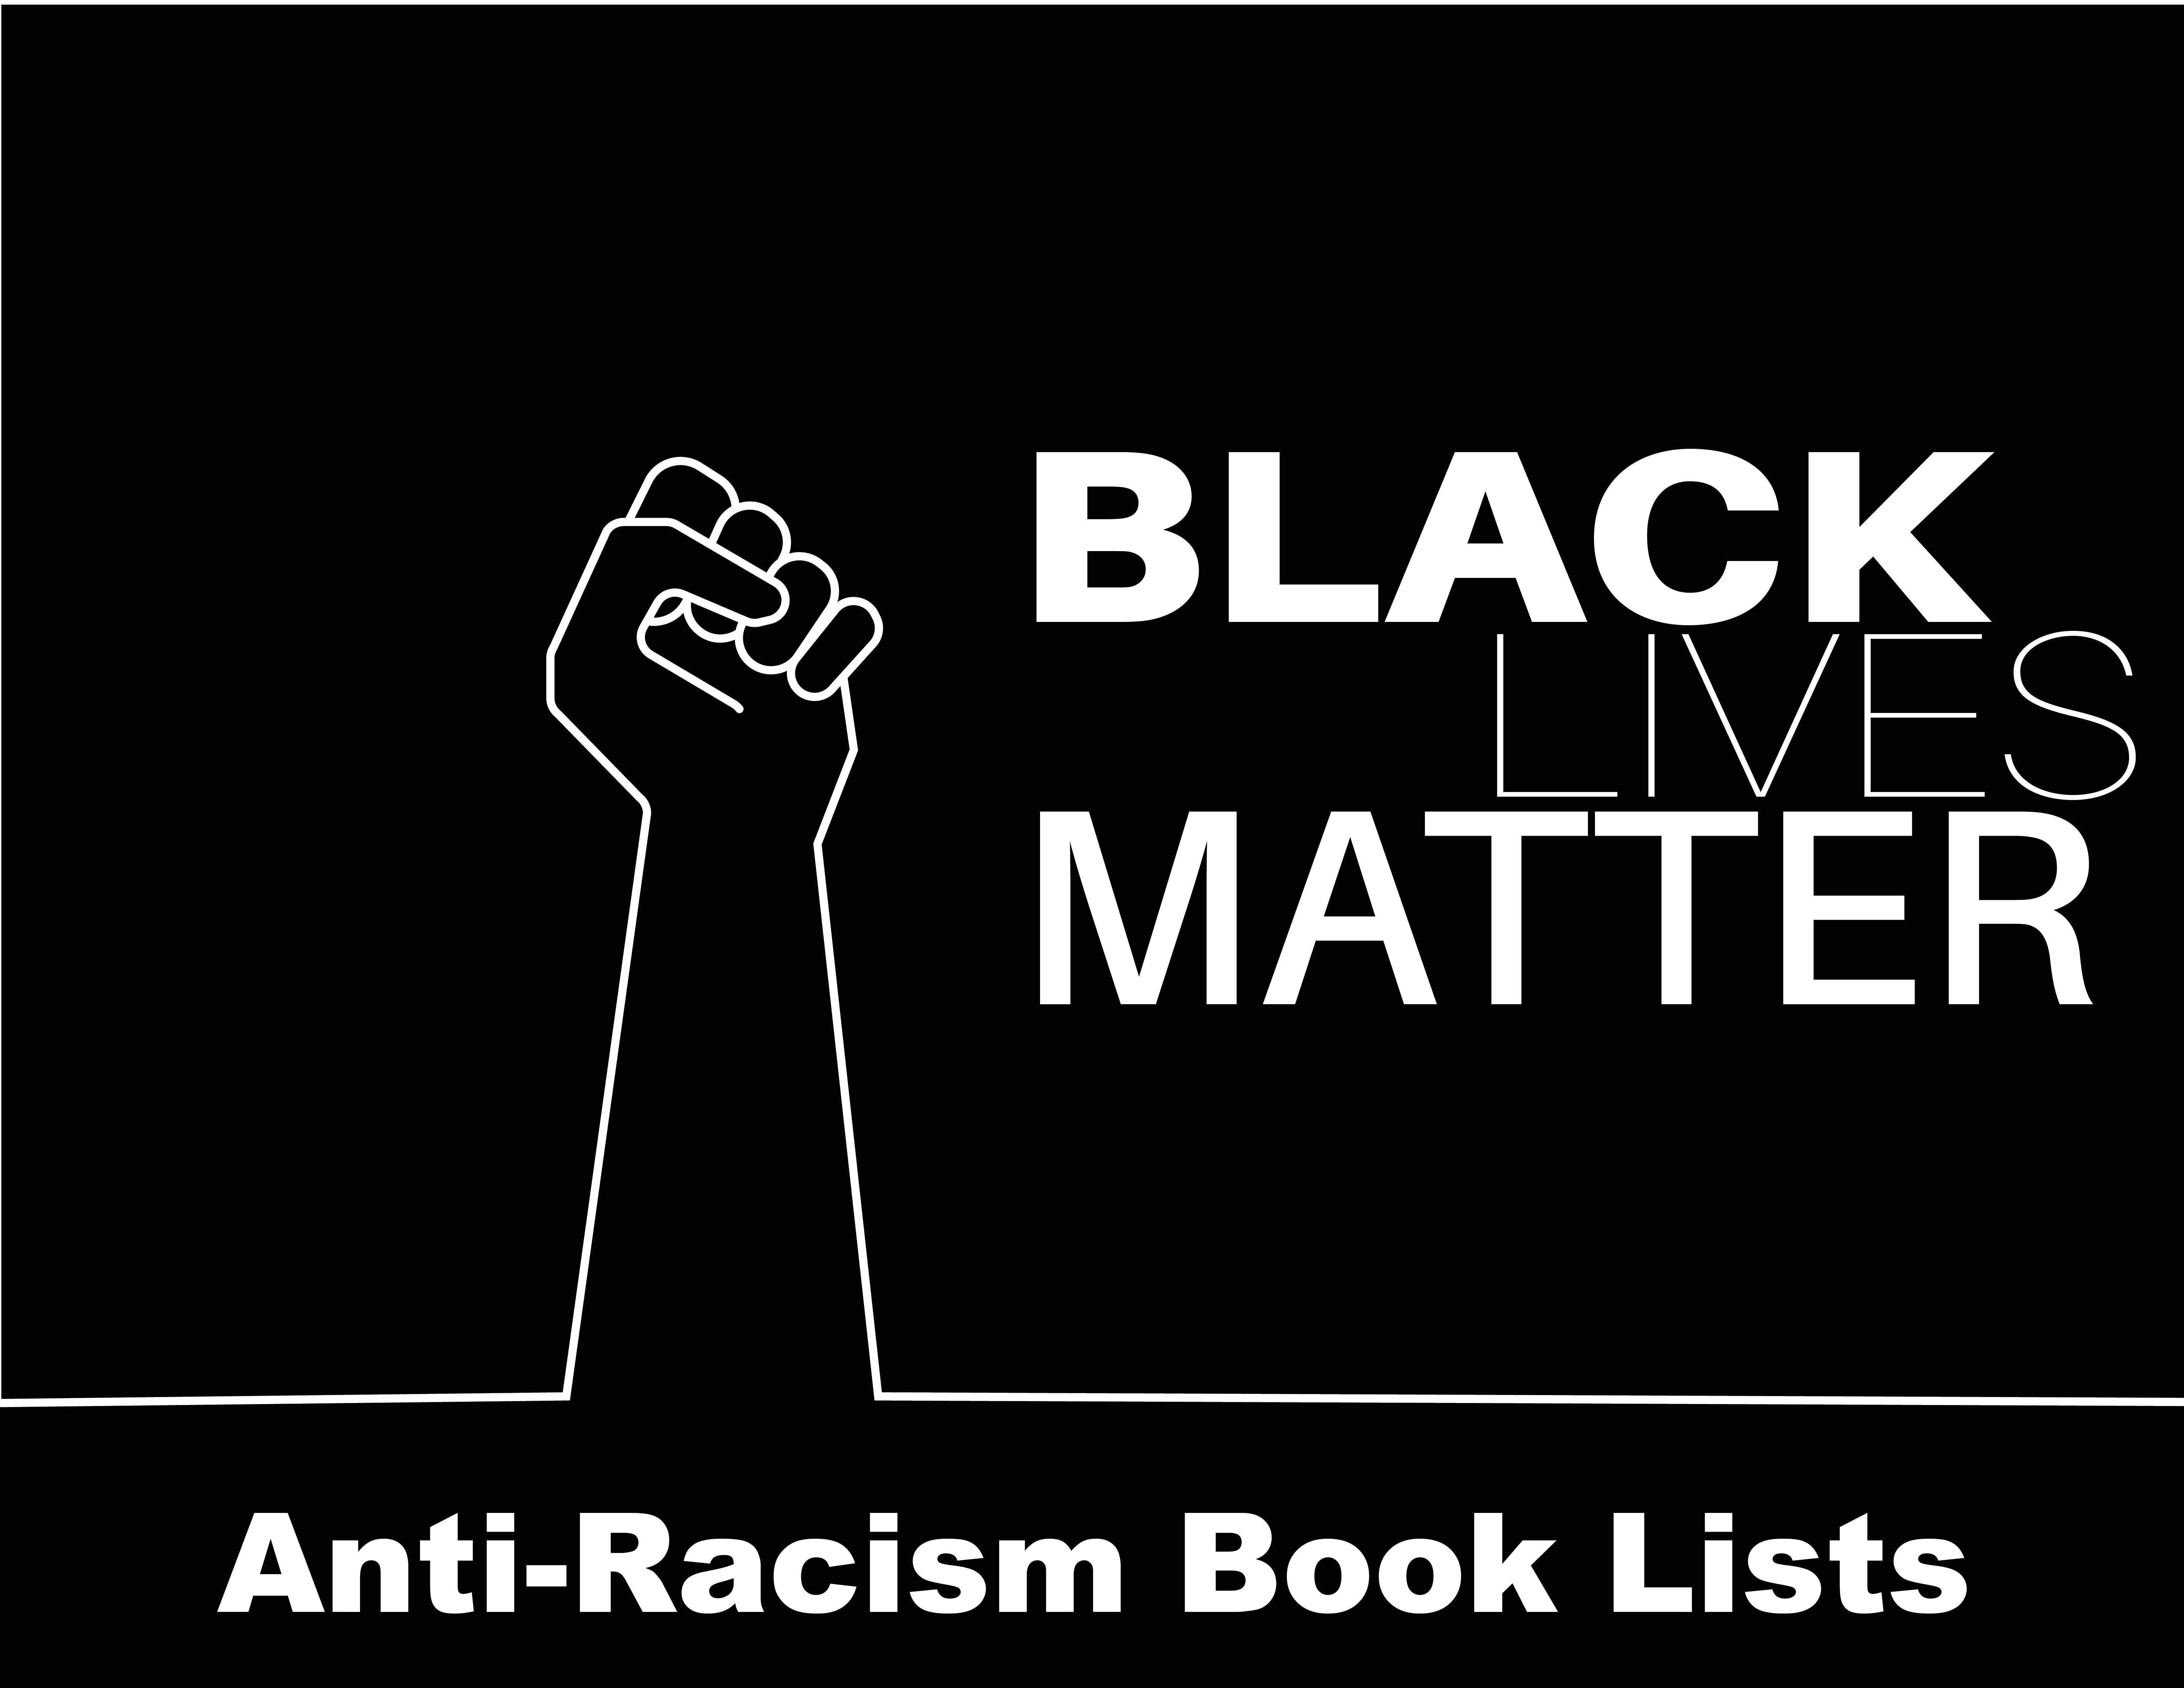 Black Lives Matter Book Lists